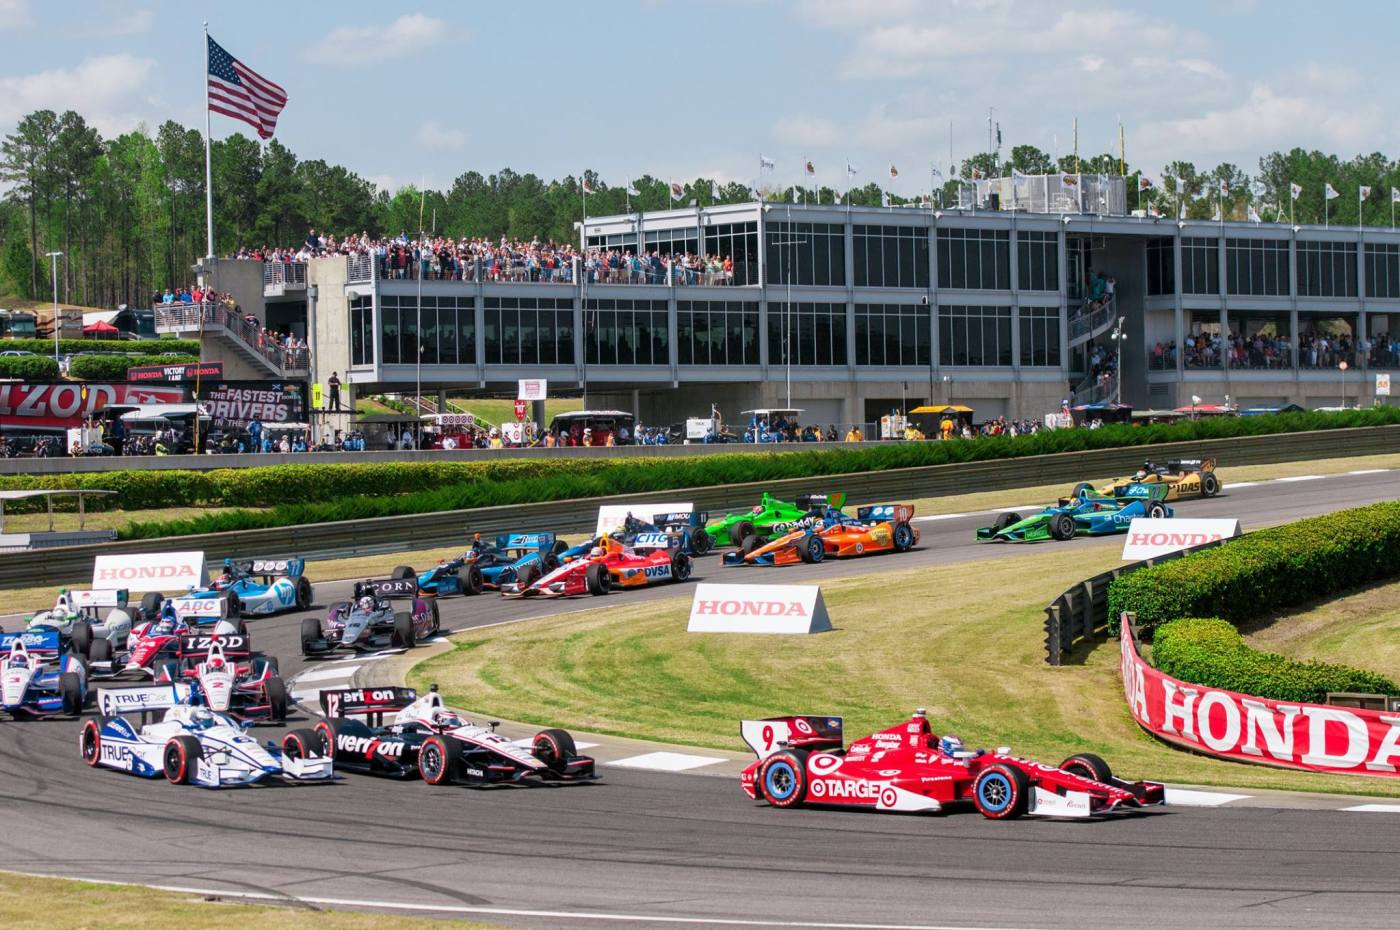 There's more than one kind of race happening at the Honda Indy Grand Prix of Alabama presented by AmFirst this year! Run the track at Barber Motorsports Park in Birmingham, Alabama during the Honda Indy Grand Prix of Alabama. (Photo submitted)